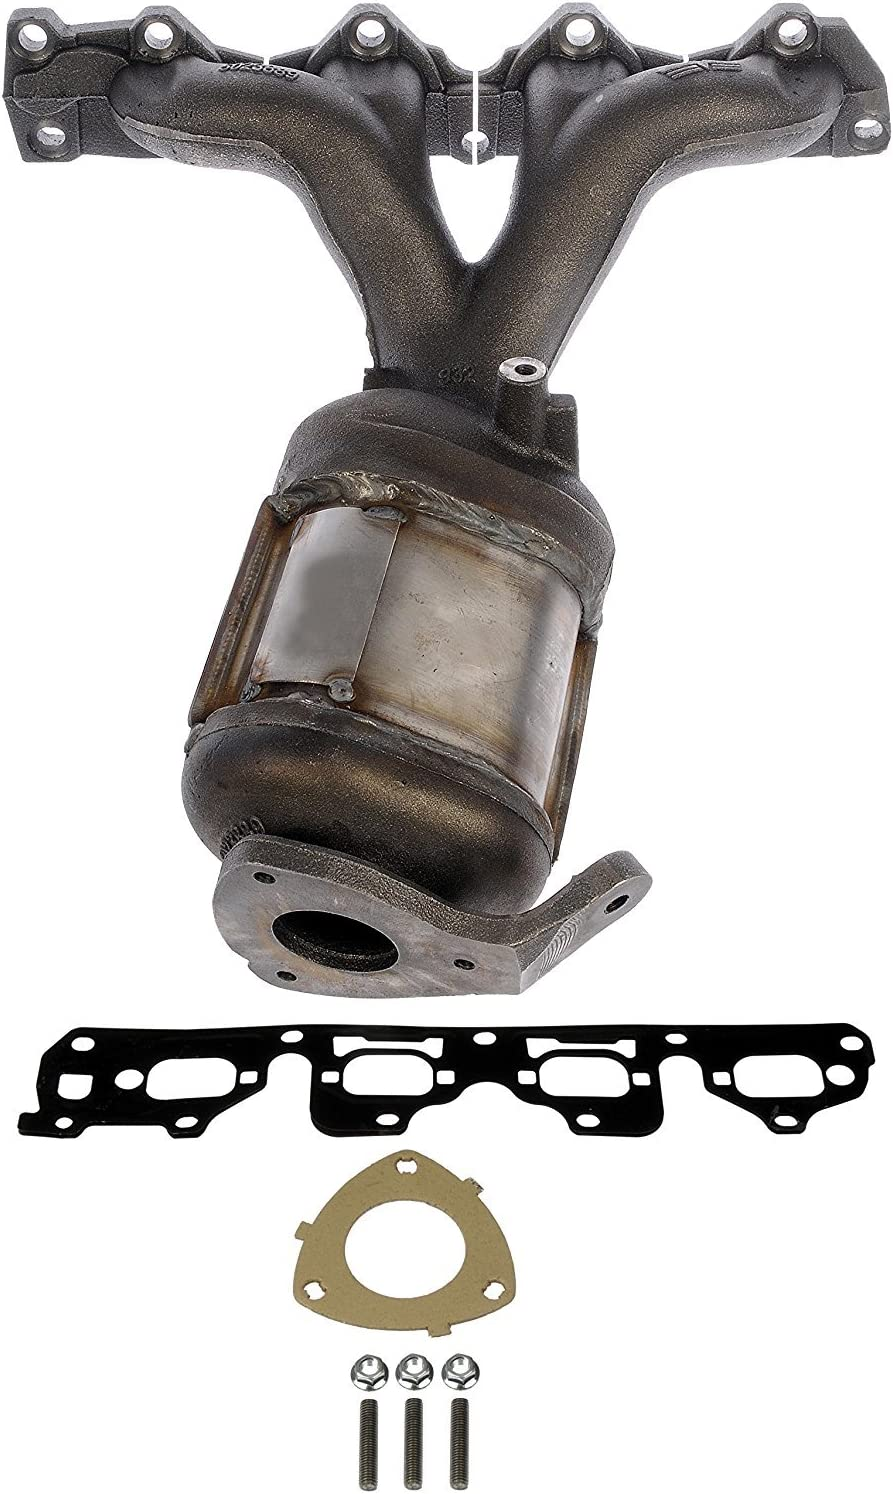 2.4L Catalytic Converter Exhaust Manifold for Chevrolet Malibu 2004-2008 2.2L